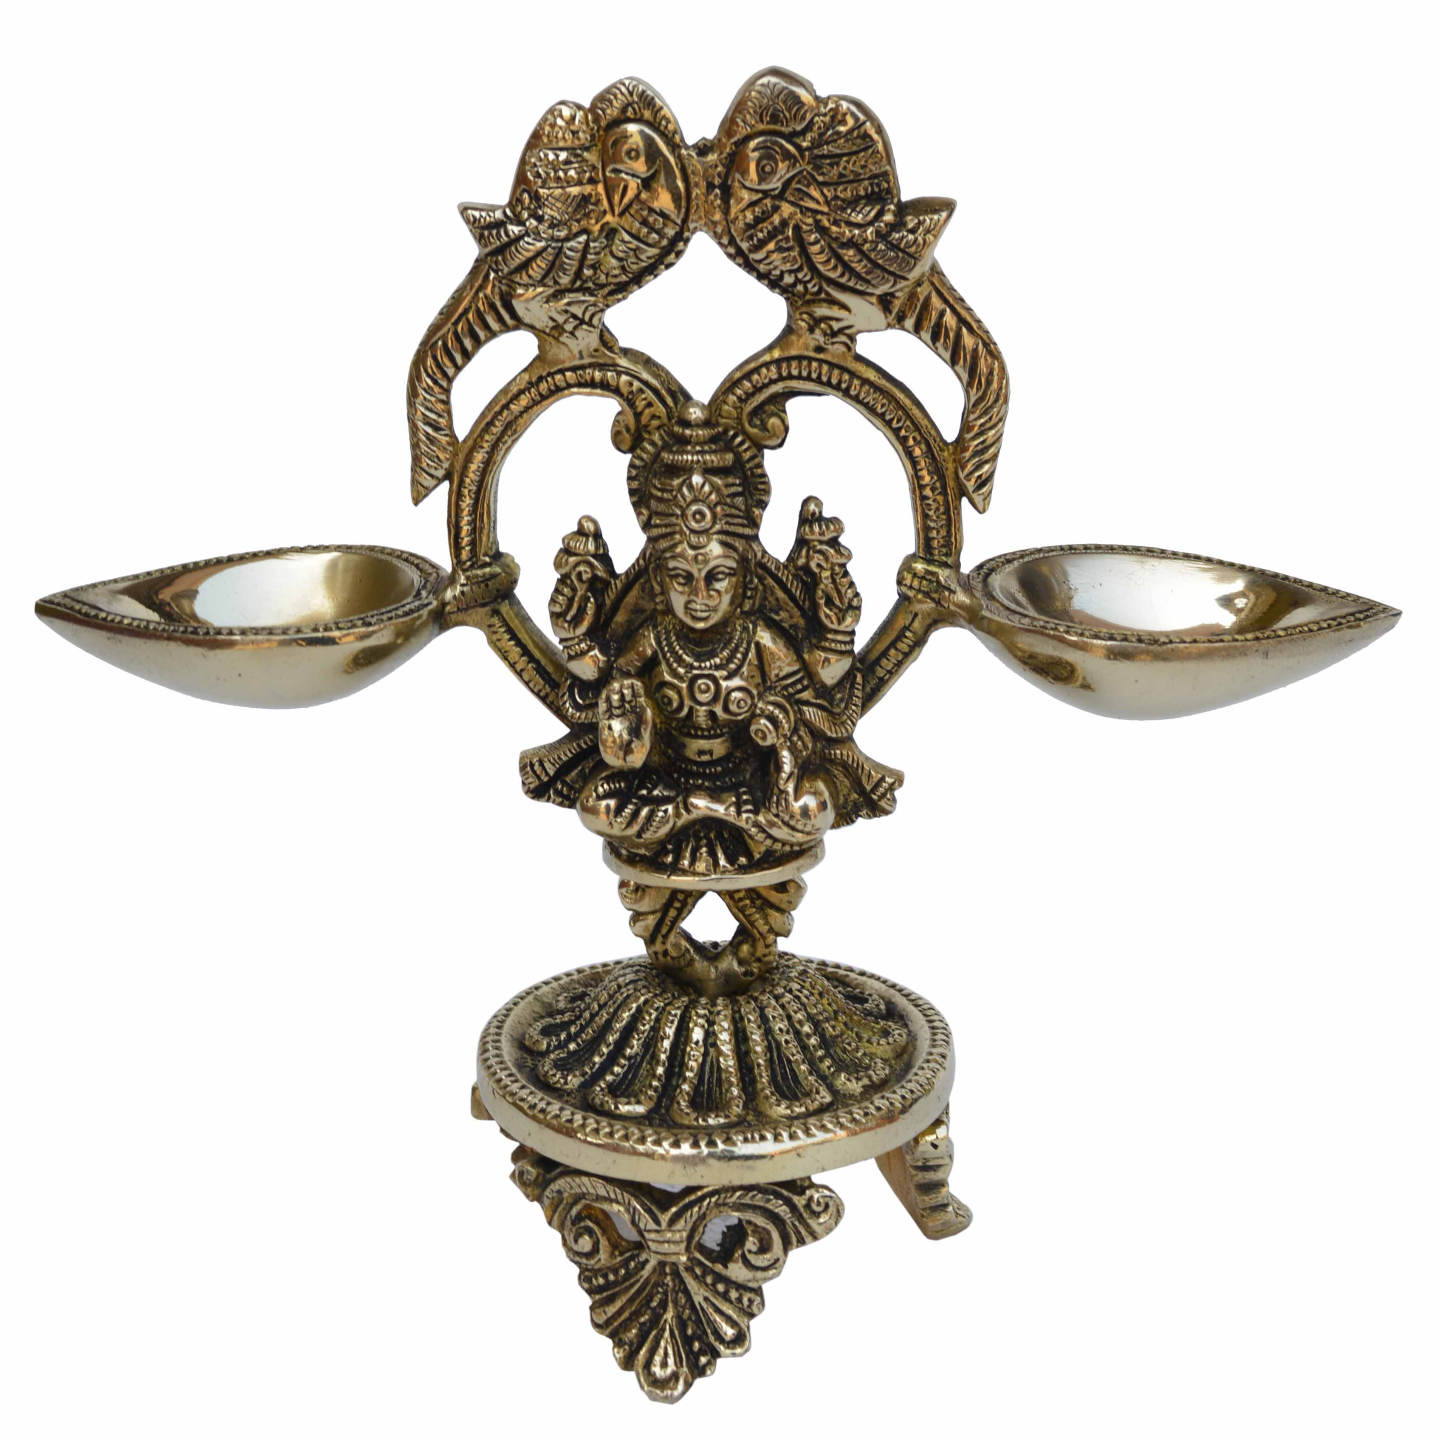 Brass Deepak, Brass Table Deepak, Deepak, Diya, Dipak, Oil Lamp, Oil Deepak, Oil Lamp, Brass Table Decor Oil lamp, Om Depak Deepak, Diwali Deepak